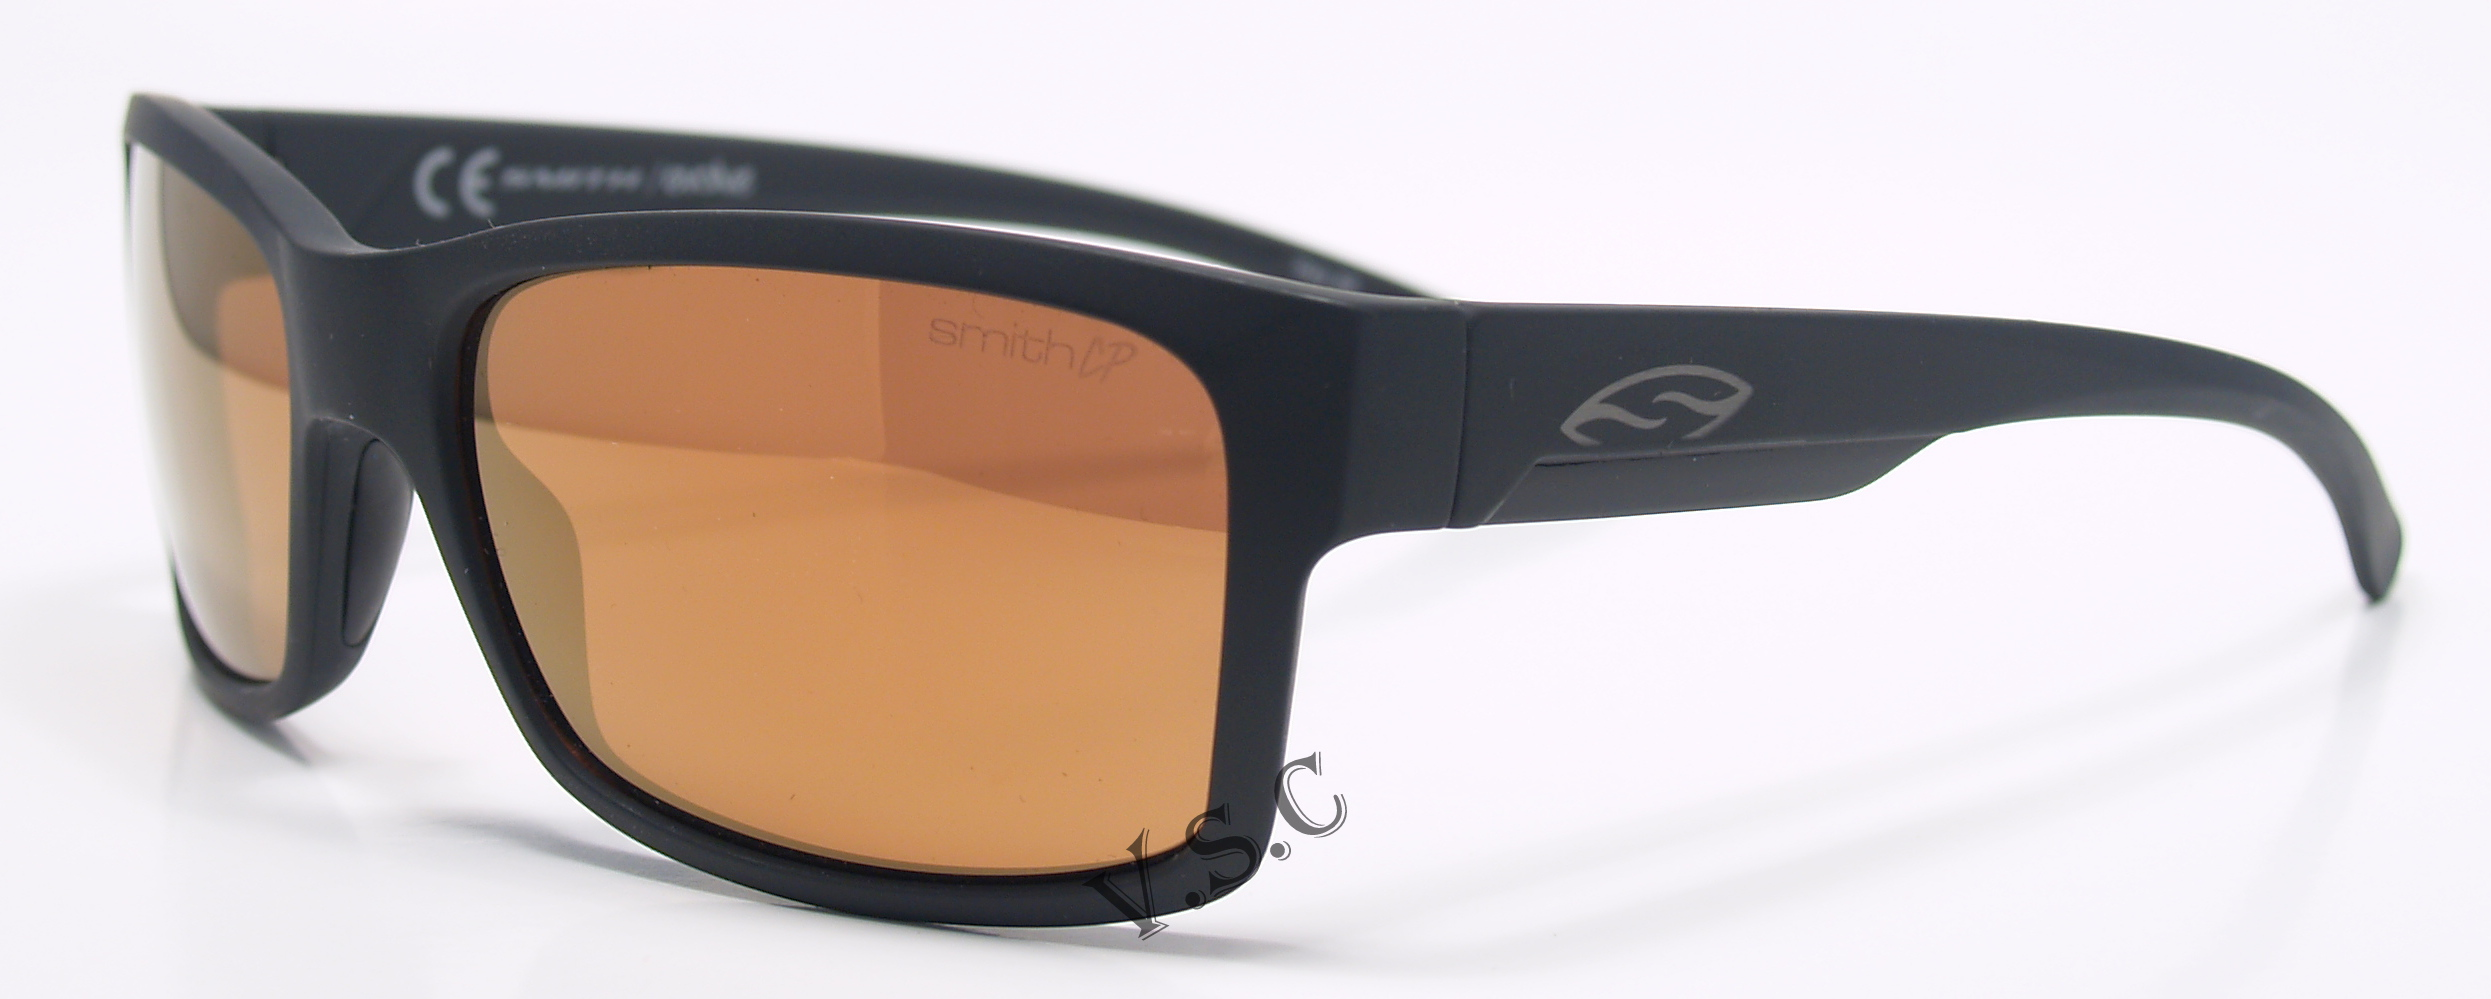 760f978c556b2 Smith Optics DOLEN Sunglasses